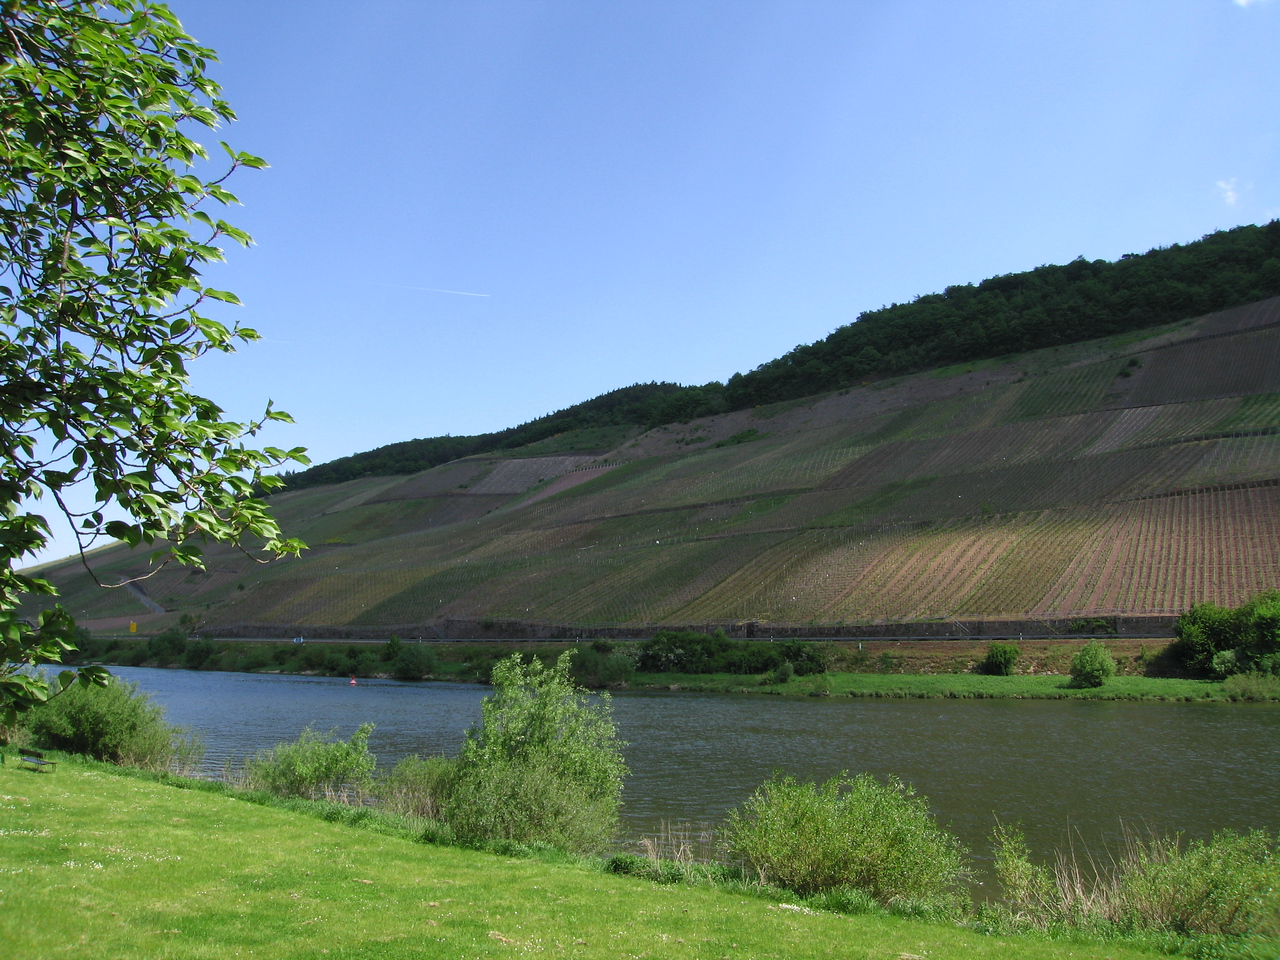 Standing on Luxembourg soil, Germany is on the other side of the Mosel.